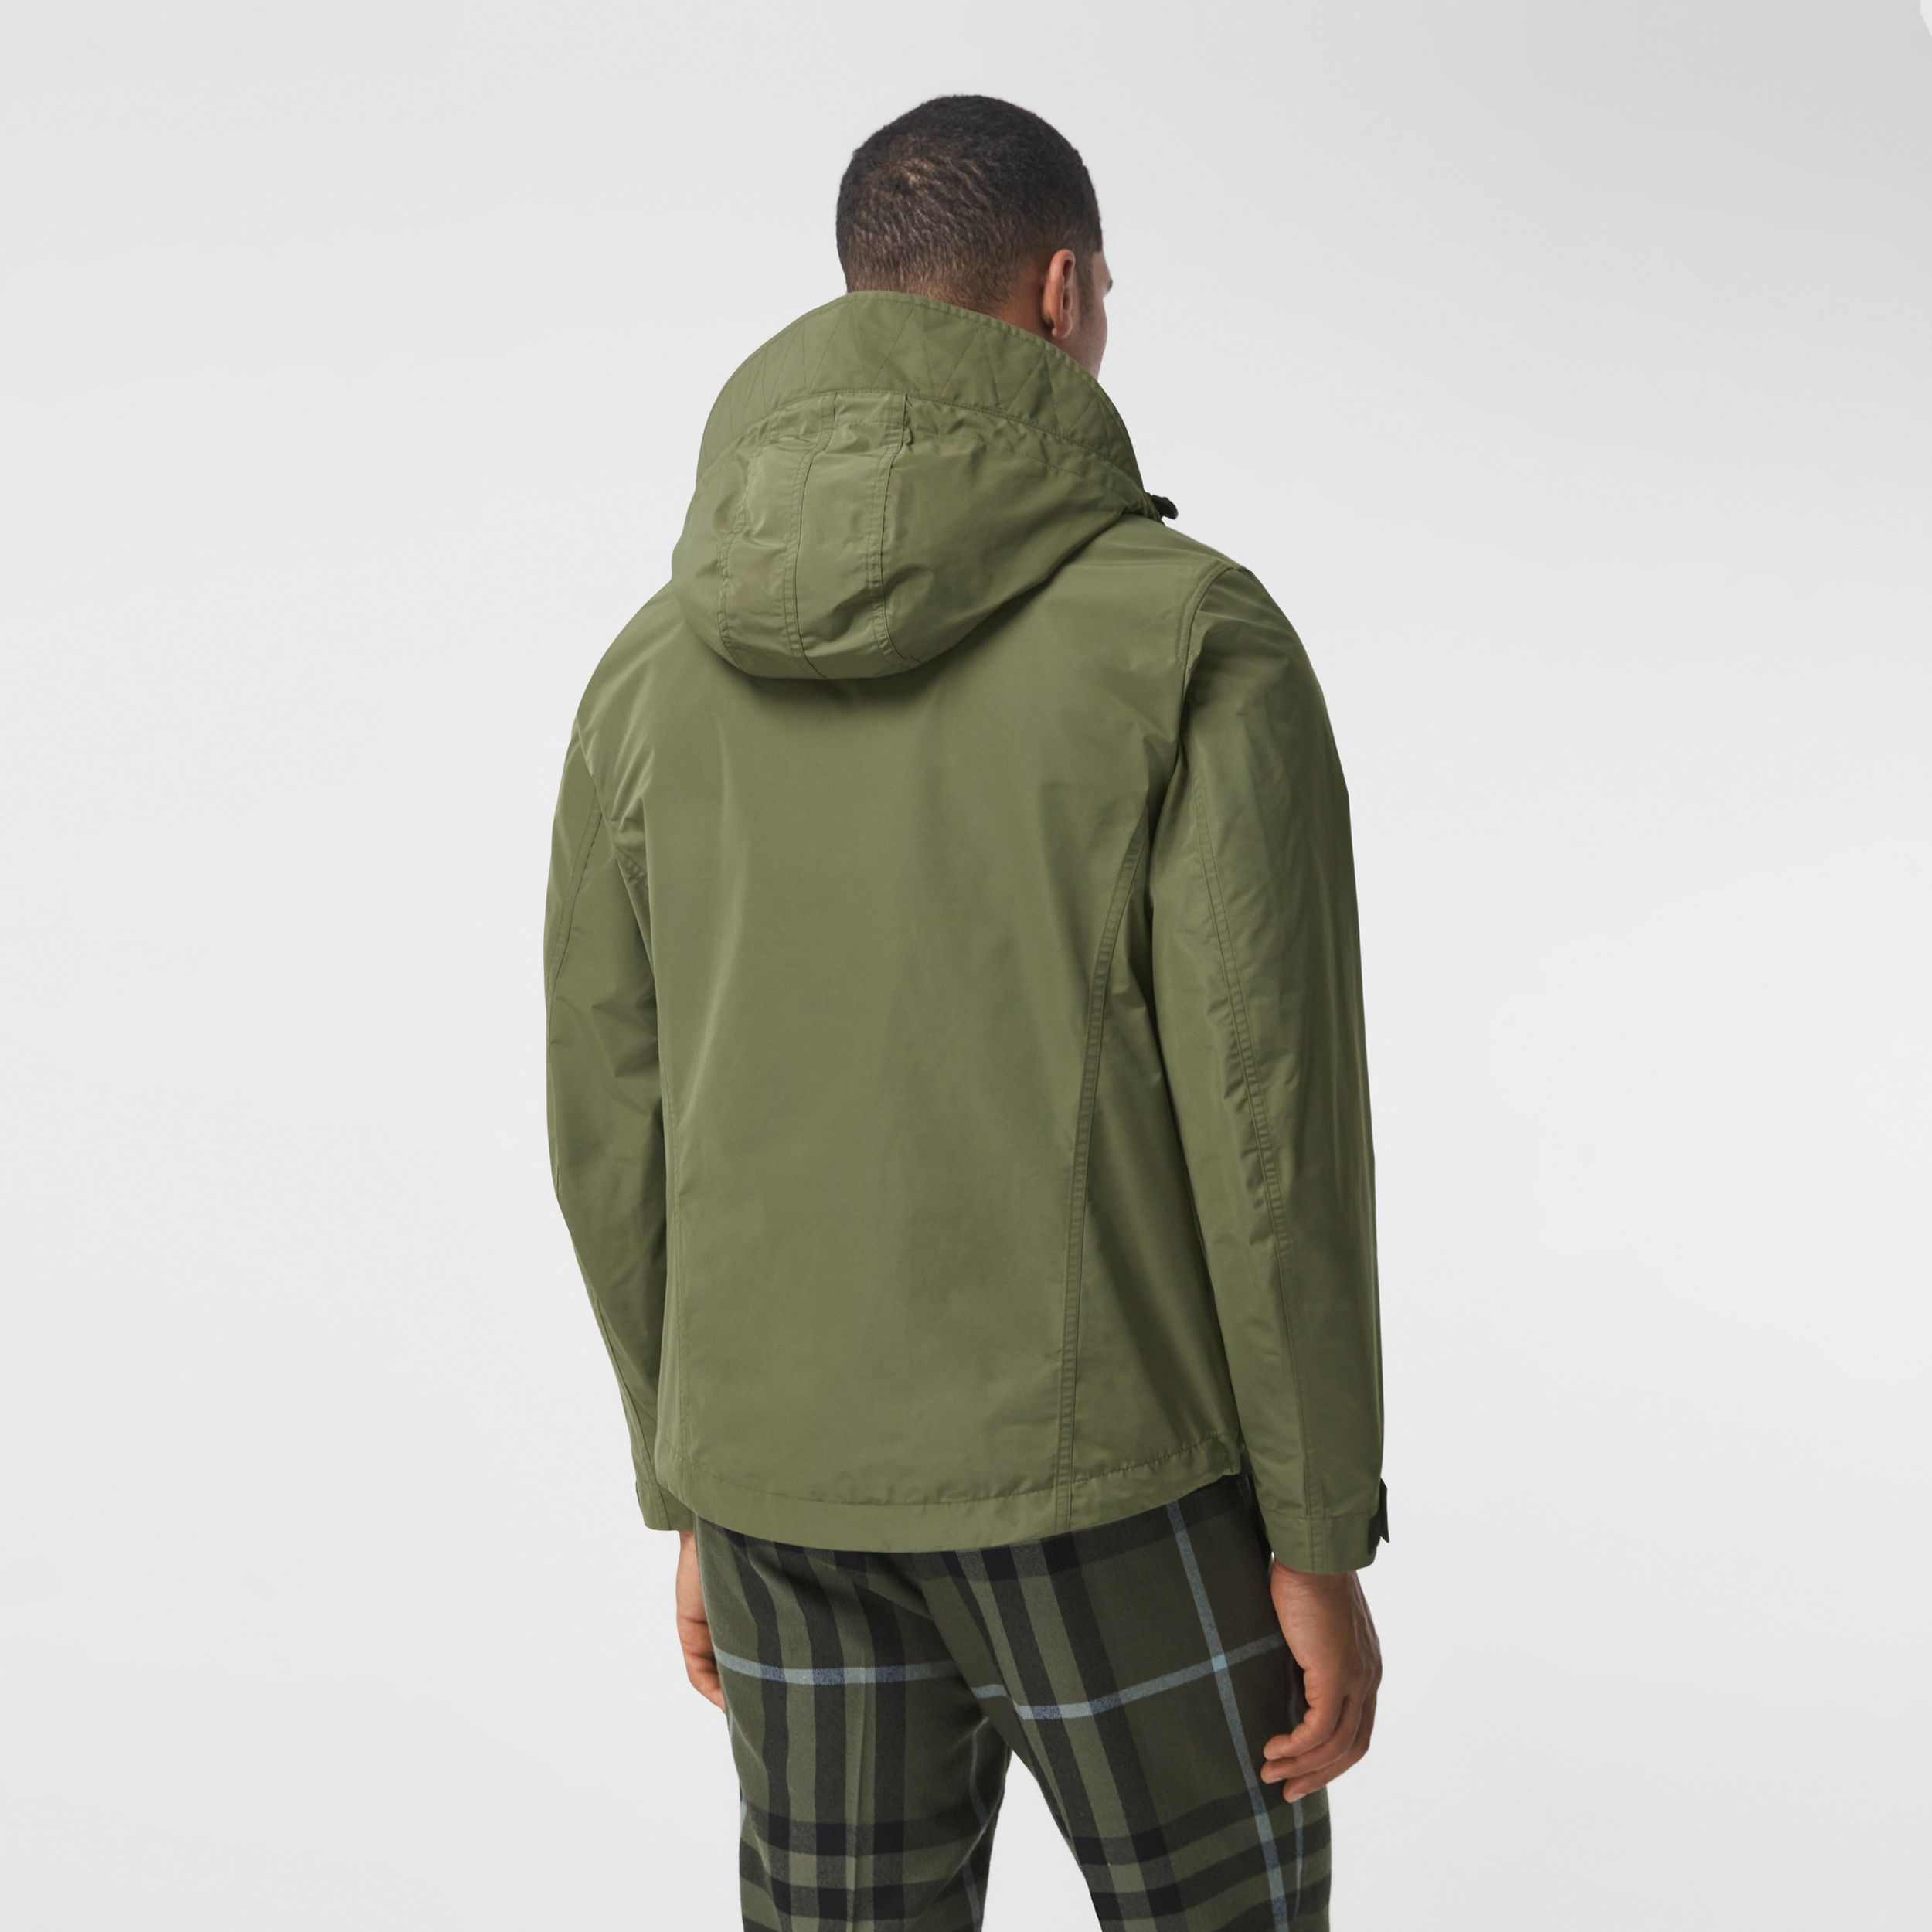 Packaway Hood Shape-memory Taffeta Jacket in Olive - Men | Burberry - 3